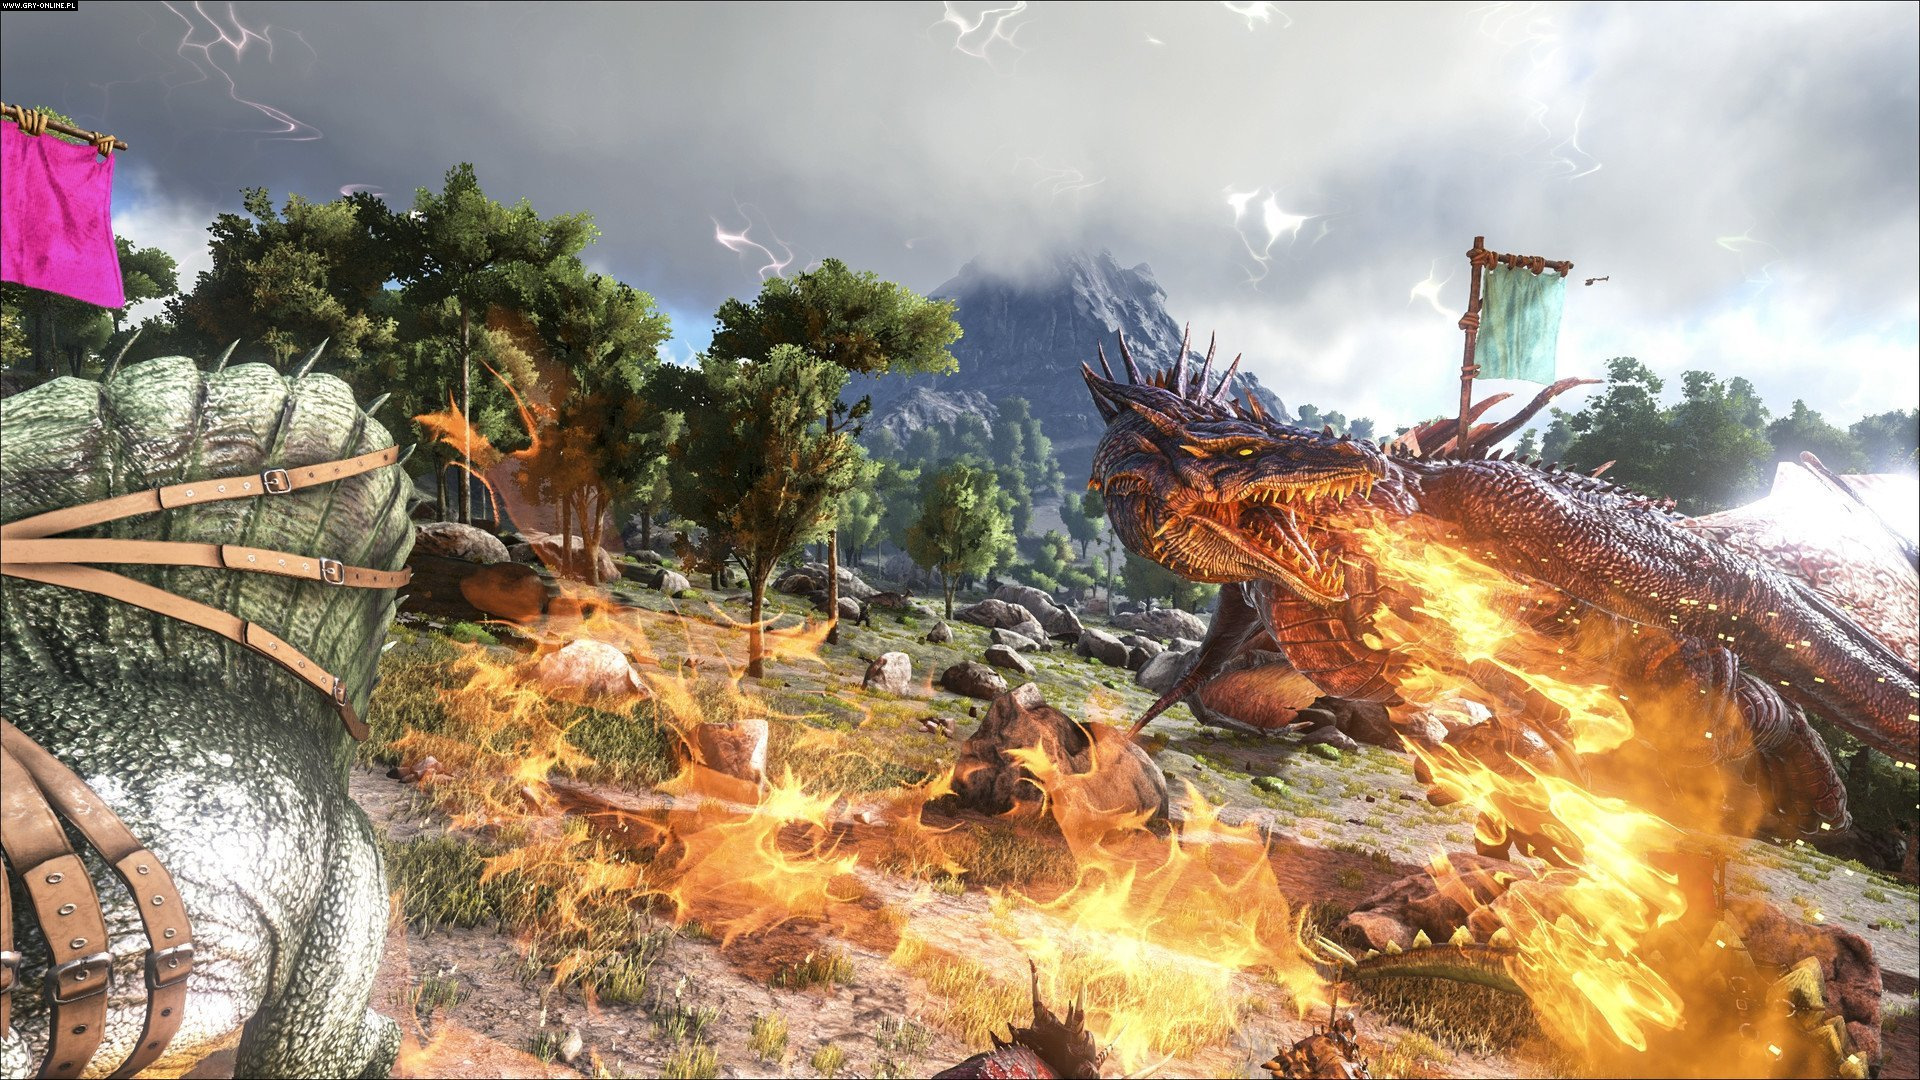 ARK: Survival of the Fittest PC Games Image 5/5, Studio Wildcard